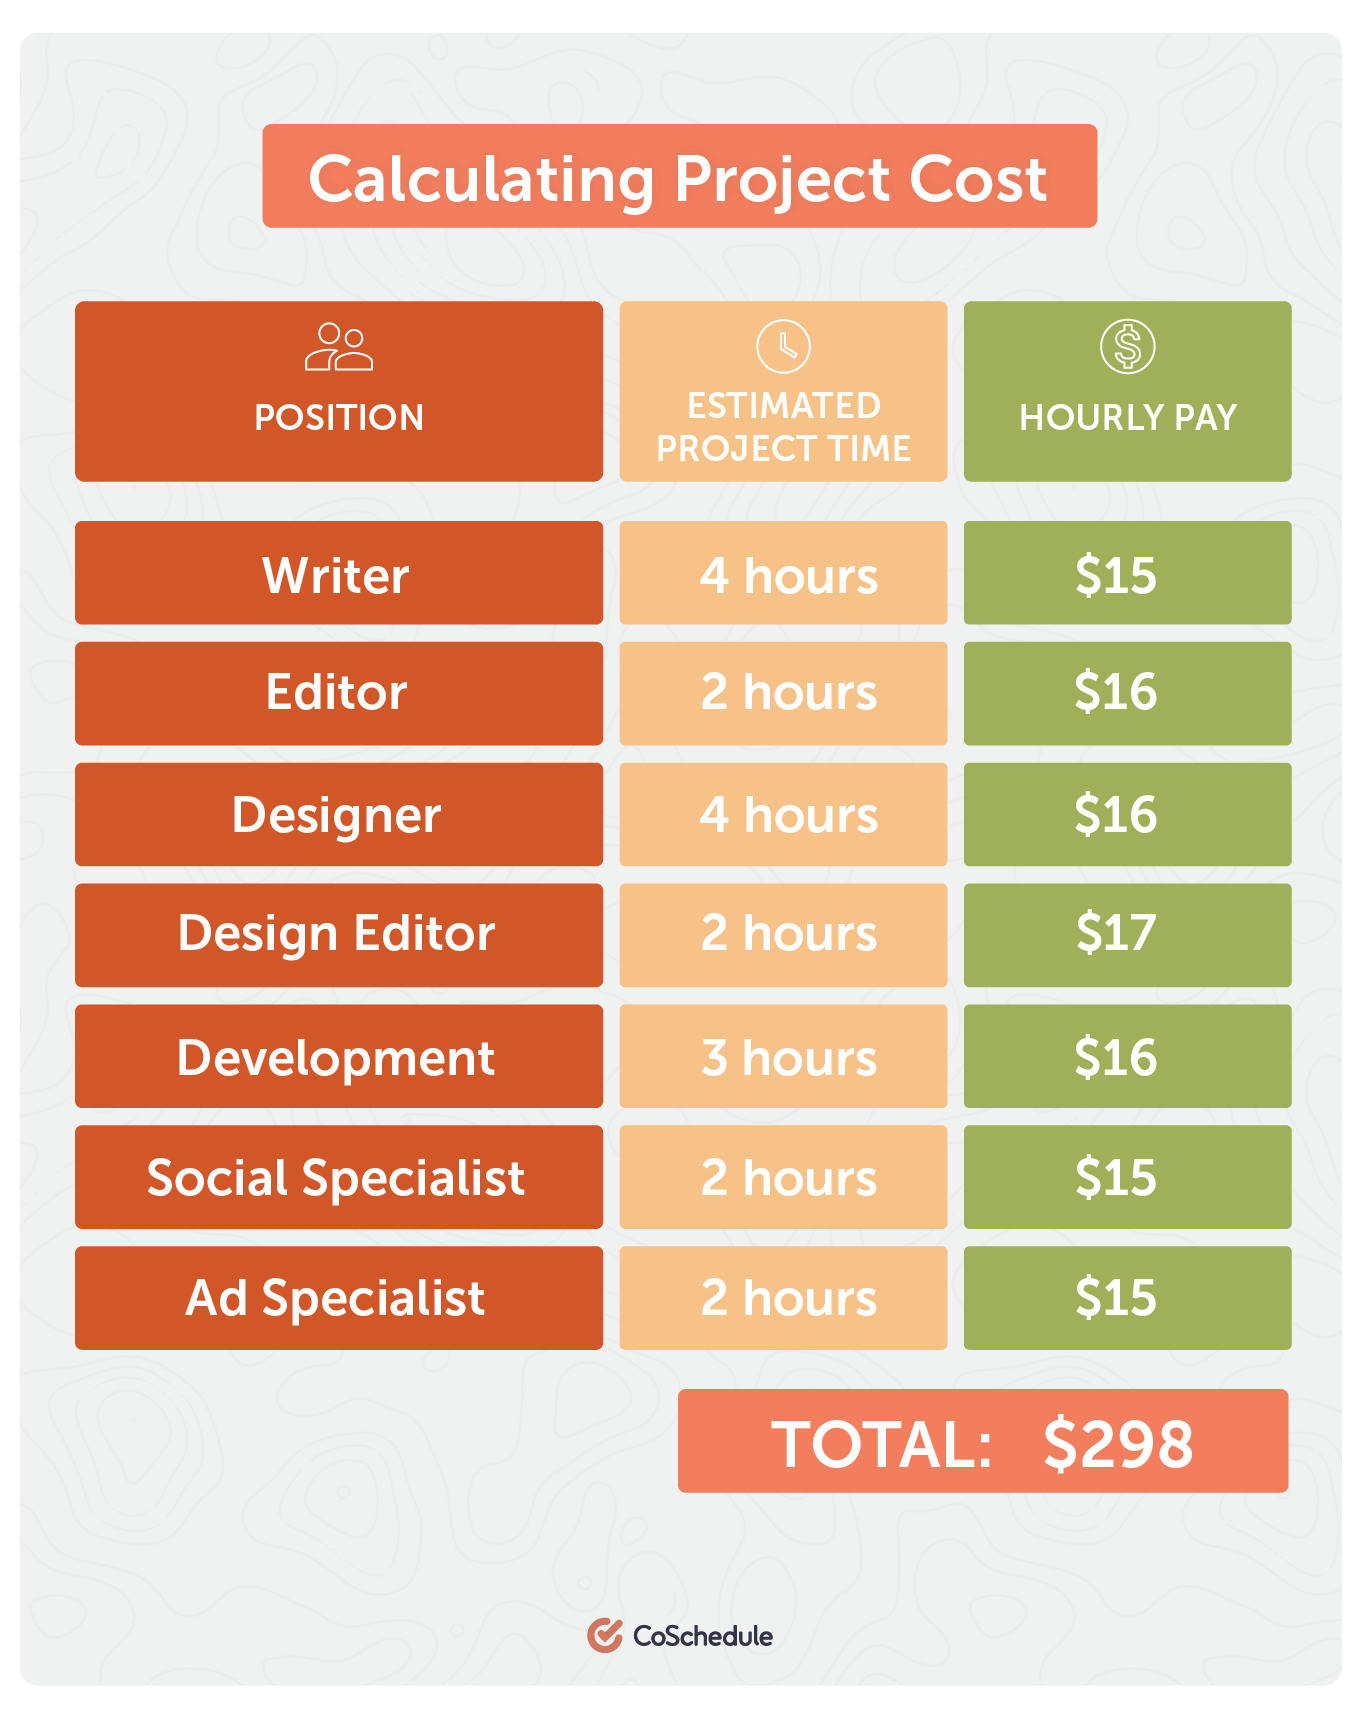 How to calculate project cost